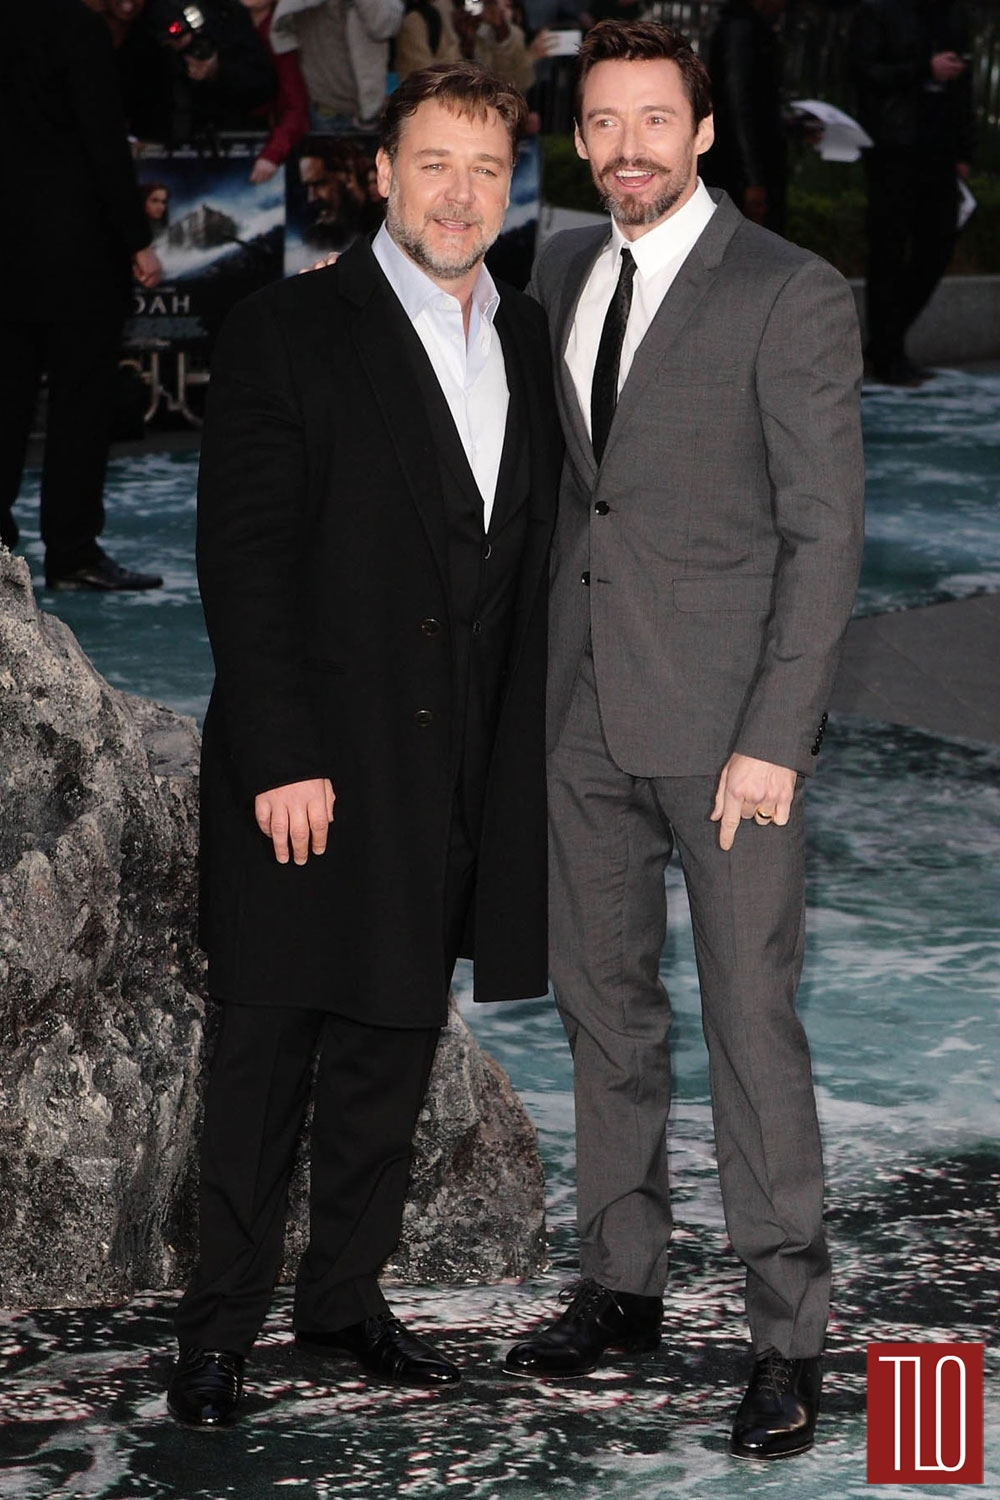 Russell-Crowe-Hugh-Jackman-Noah-London-Premiere-Tom-Lorenzo-Site-TLO (1)